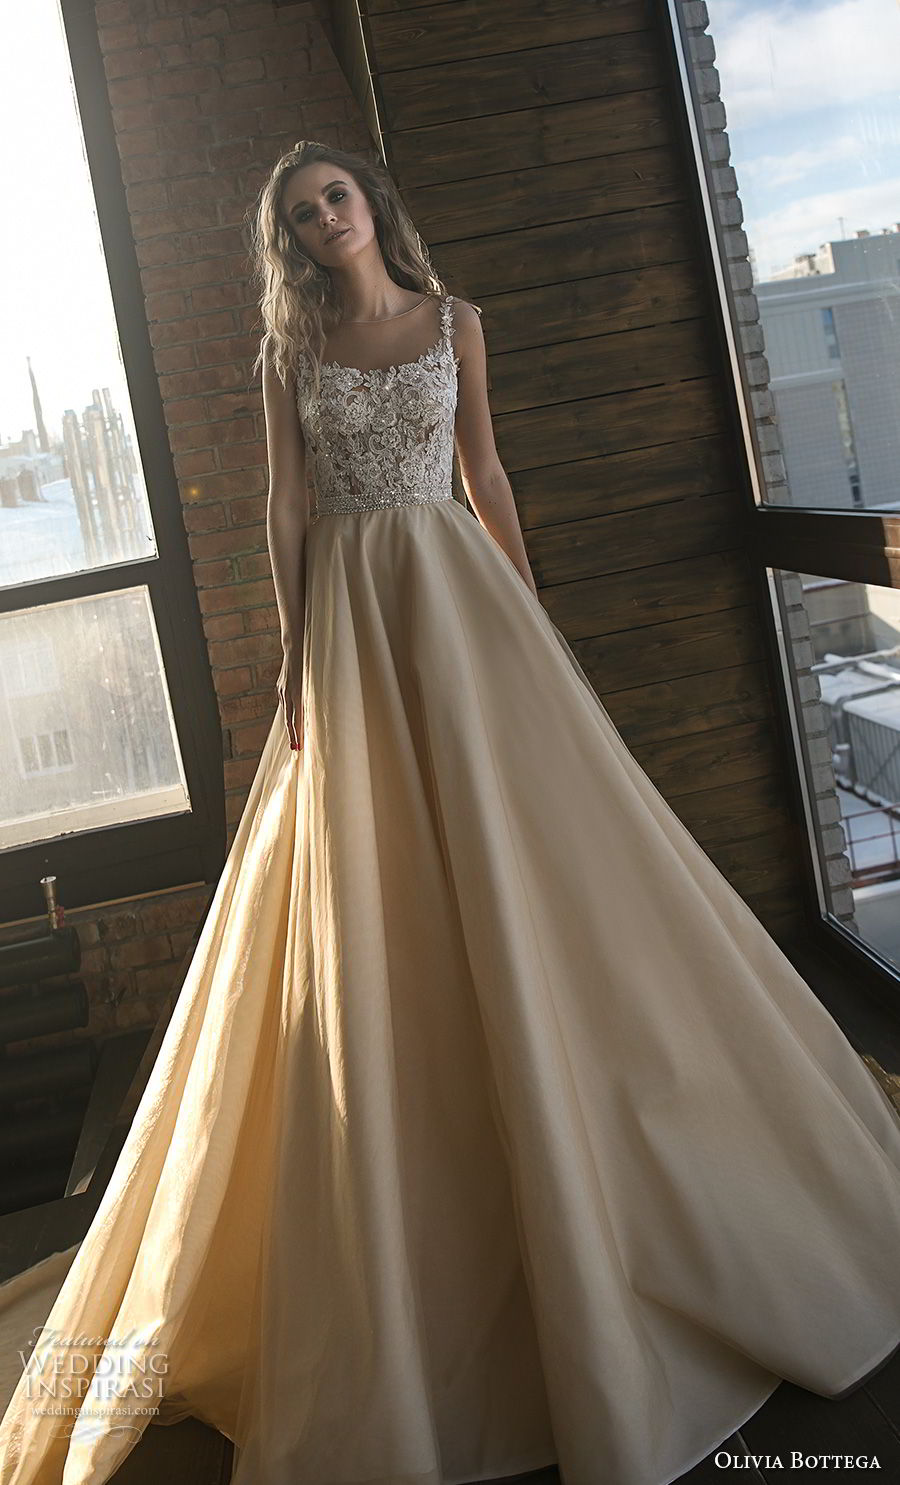 olivia bottega 2018 bridal sleeveless square neckline heavily embellished bodice romantic champagne colr a line wedding dress royal train (2) mv